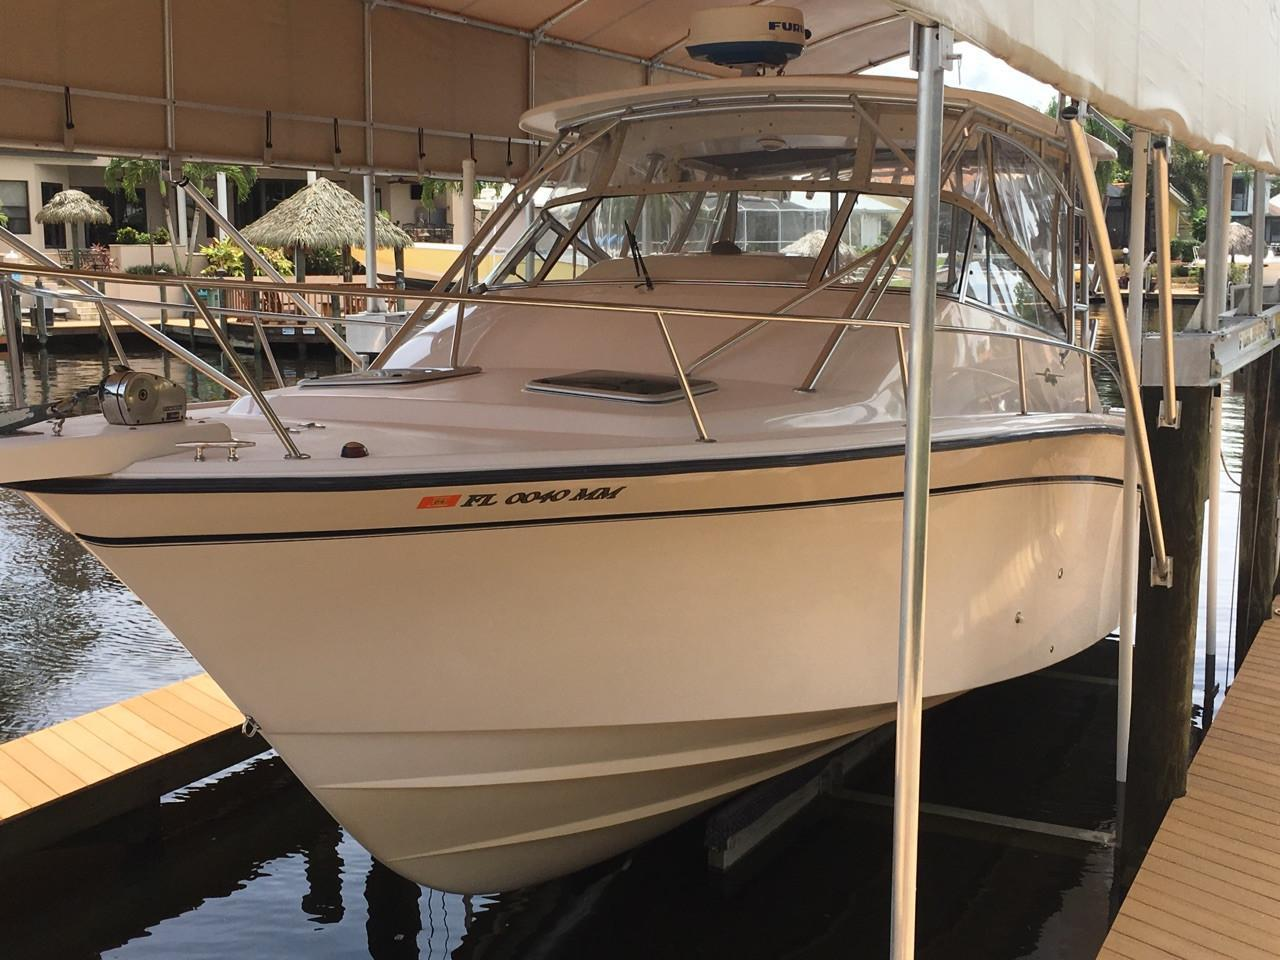 2004 used grady white express 330 saltwater fishing boat for Grady white fishing boats